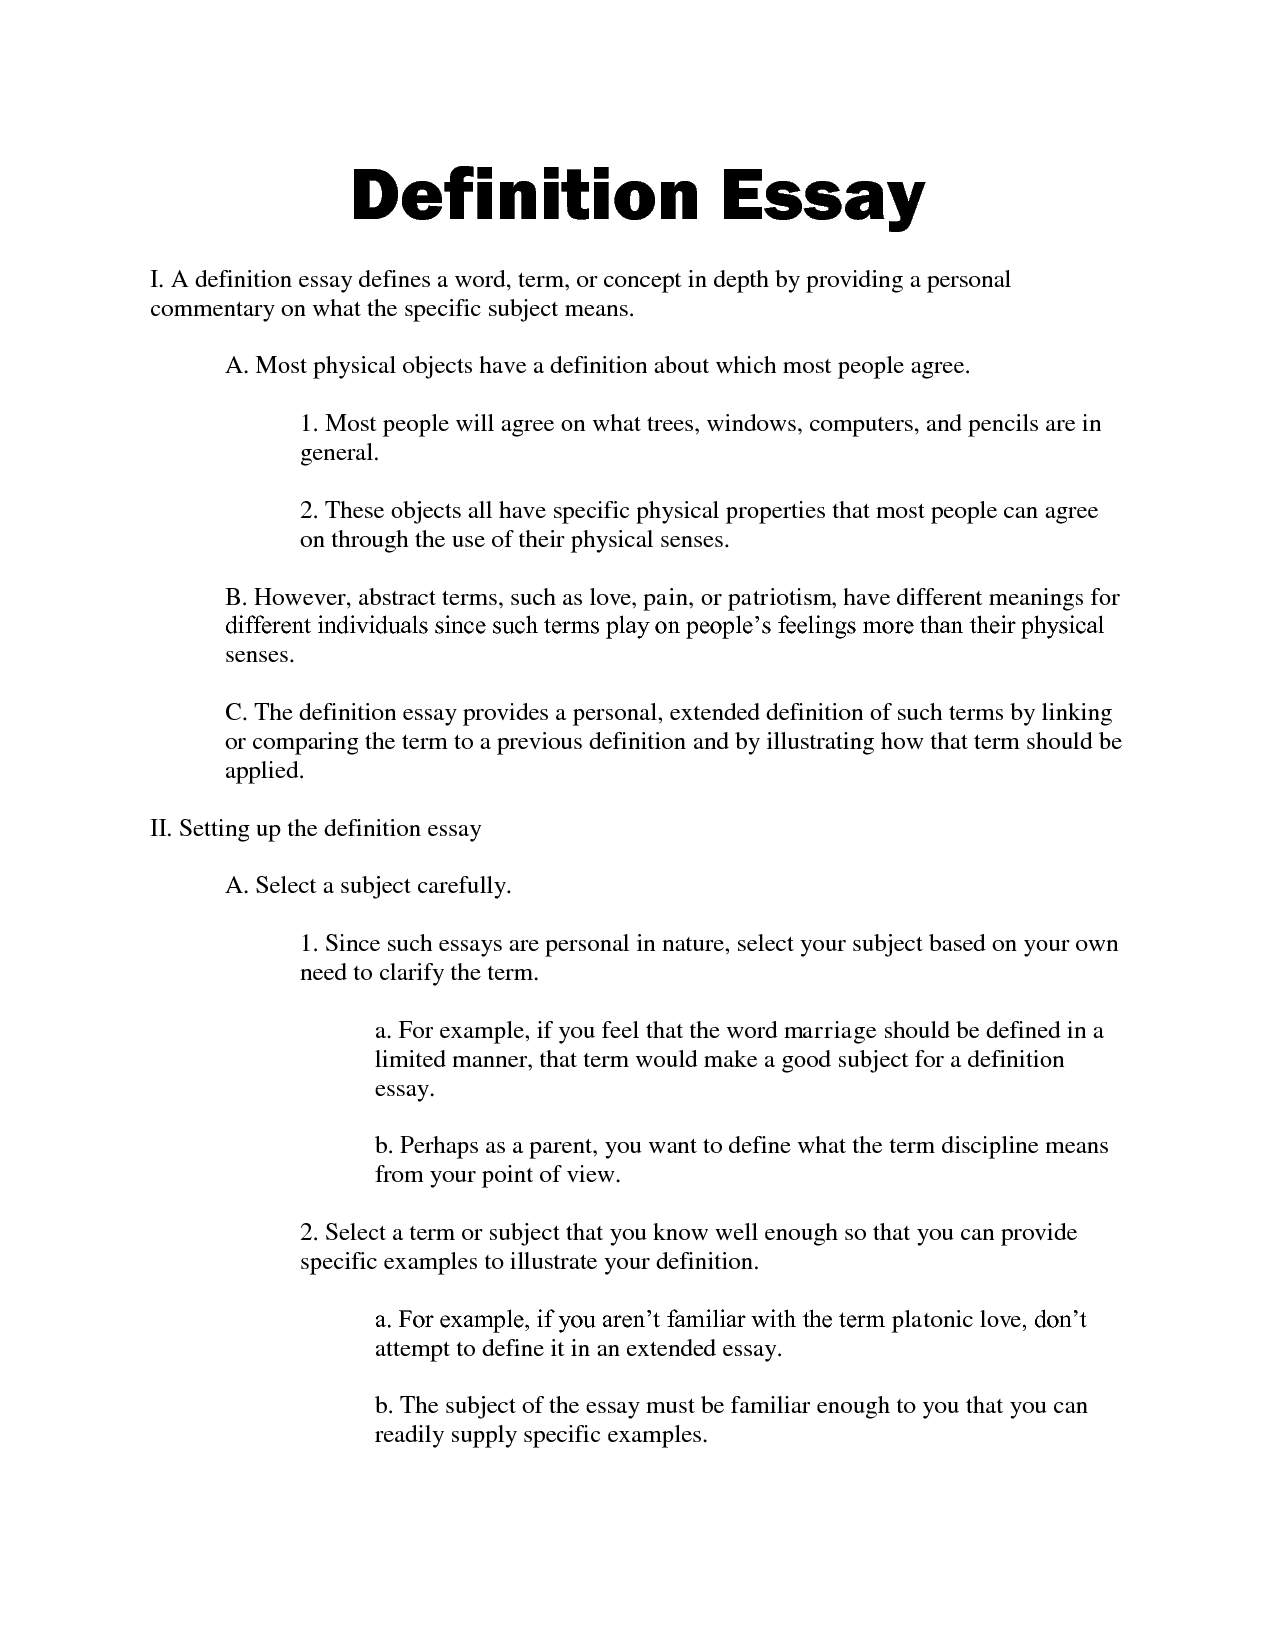 003 Thesis Definition Essay Example Brilliant Ideas Of Help Nativeagle Fantastic Examples Outstanding Statement For Success Beauty Full